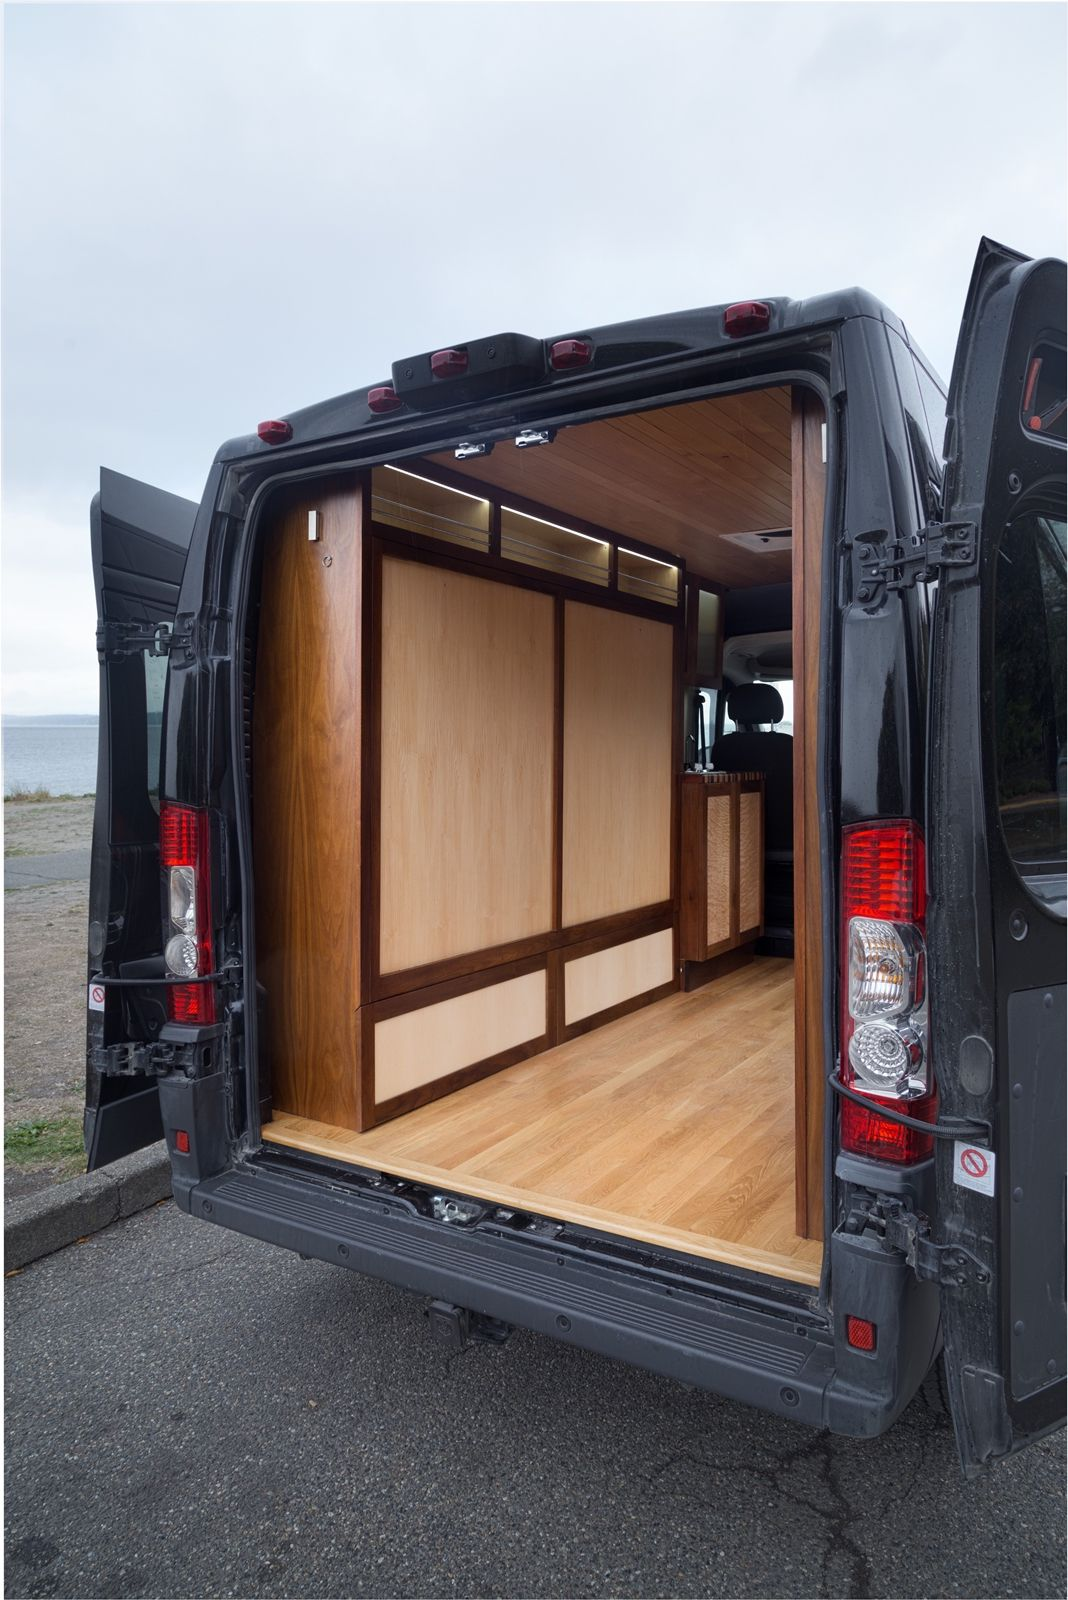 Hand Crafted Van Boasts Custom Woodworking And Foldaway